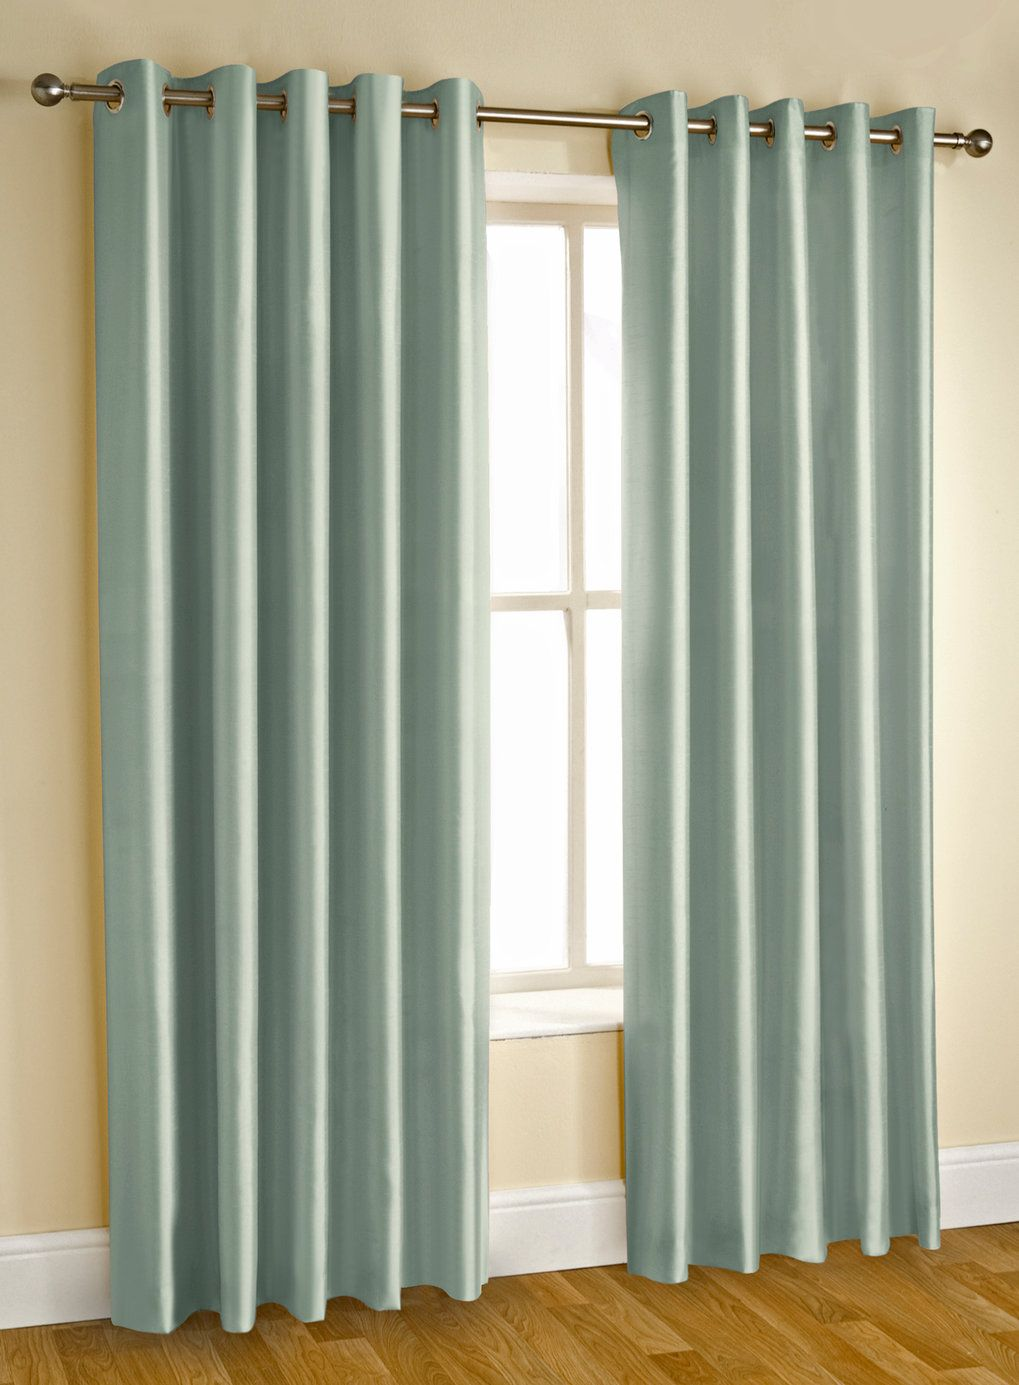 Bhs Curtains Duck Egg Blue Www Myfamilyliving Com